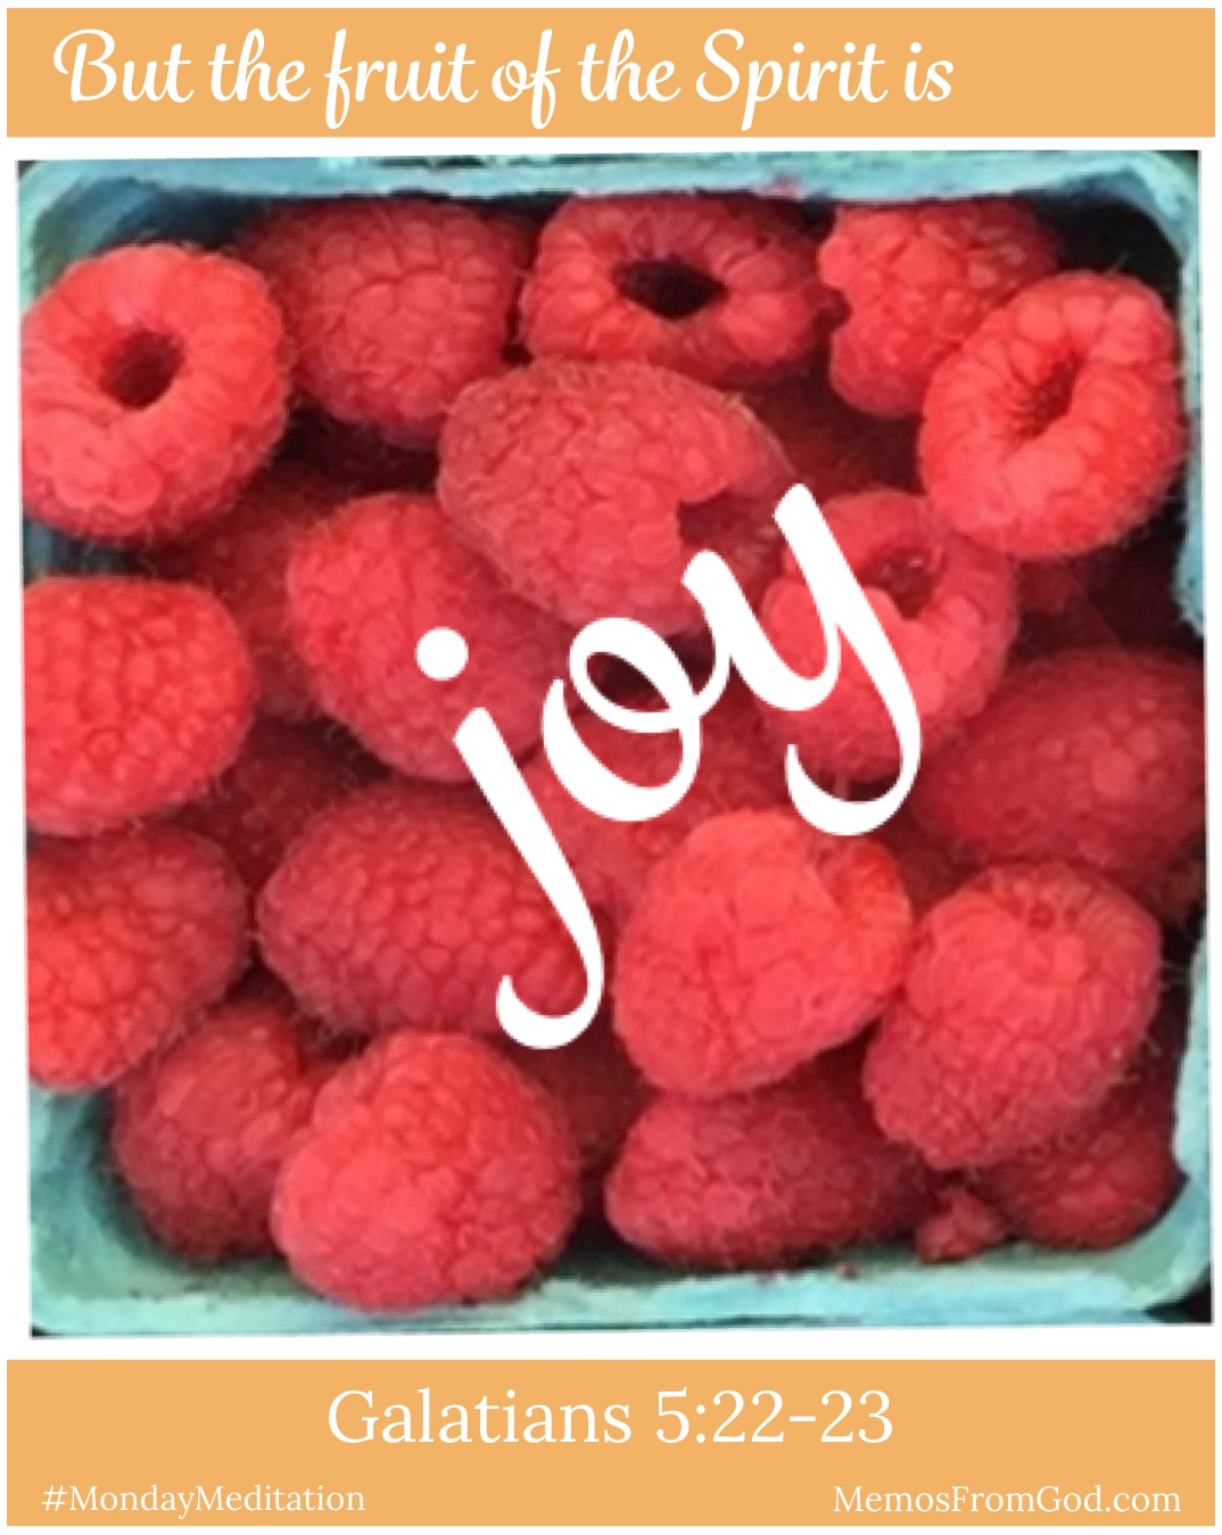 The top view of a pint box of red raspberries. Caption: But the fruit of the Spirit is joy. Galatians 5:22-23